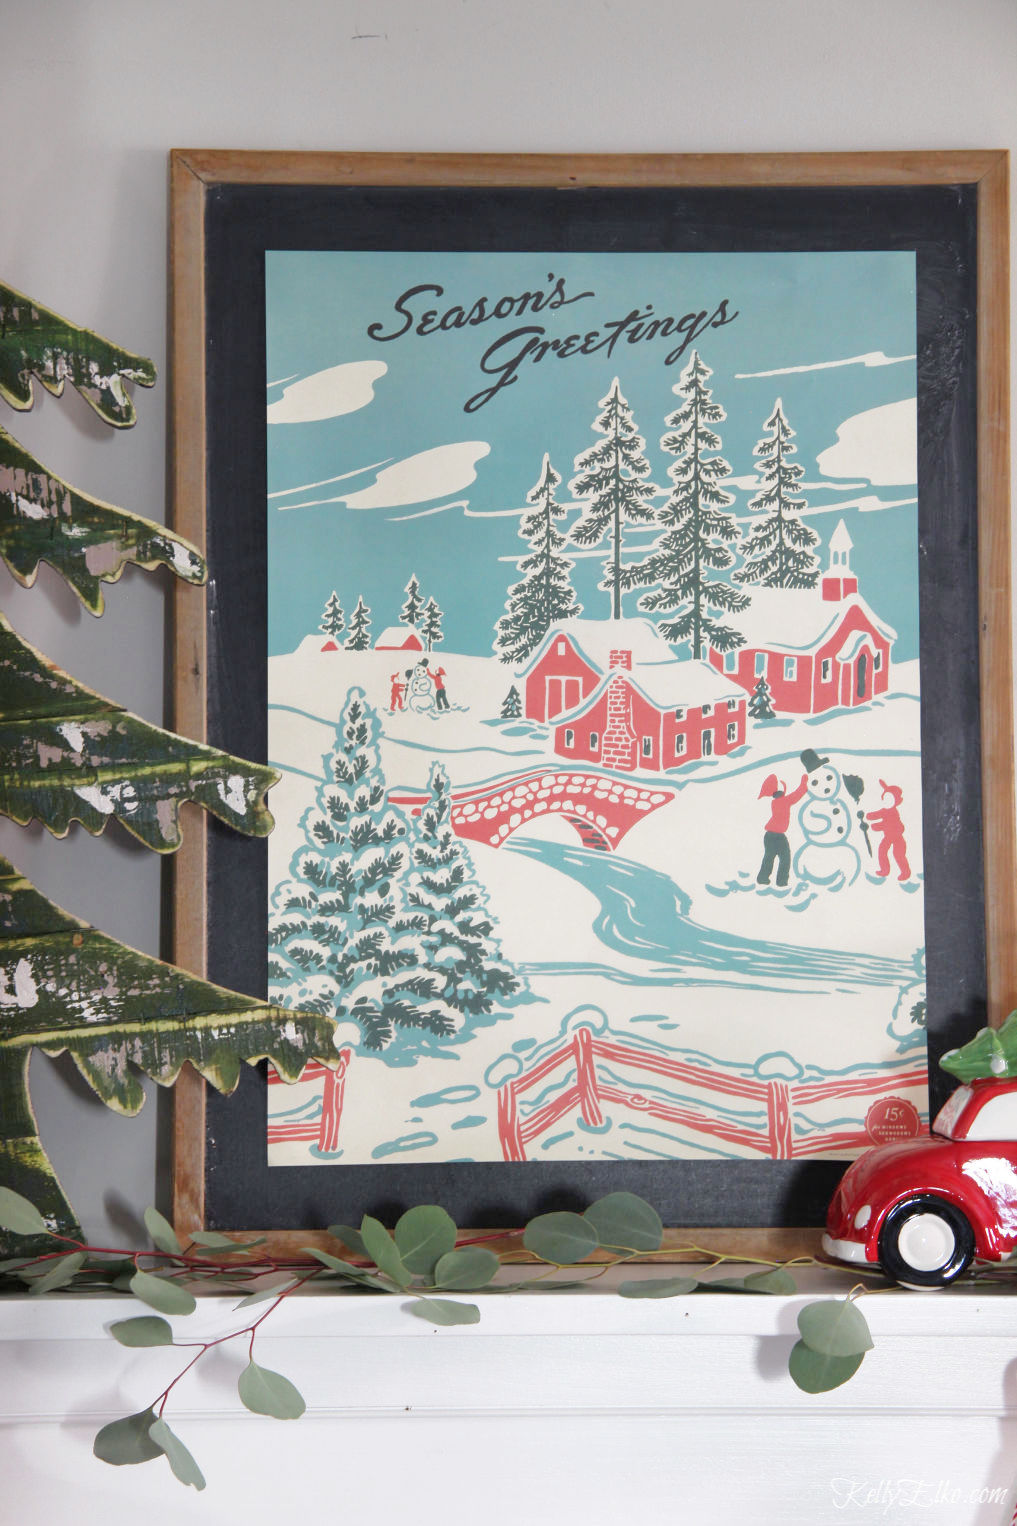 Beautiful Christmas Art of a little winter village with red barn kellyelko.com #christmas #christmasdecor #christmasdecorating #christmashome #christmastour #diychristmas #christmasideas #christmasmantel #christmastree #christmasornaments #vintagechristmas #farmhousechristmas #colorfulchristmas #creativechristmas #kellyelko #christmasart